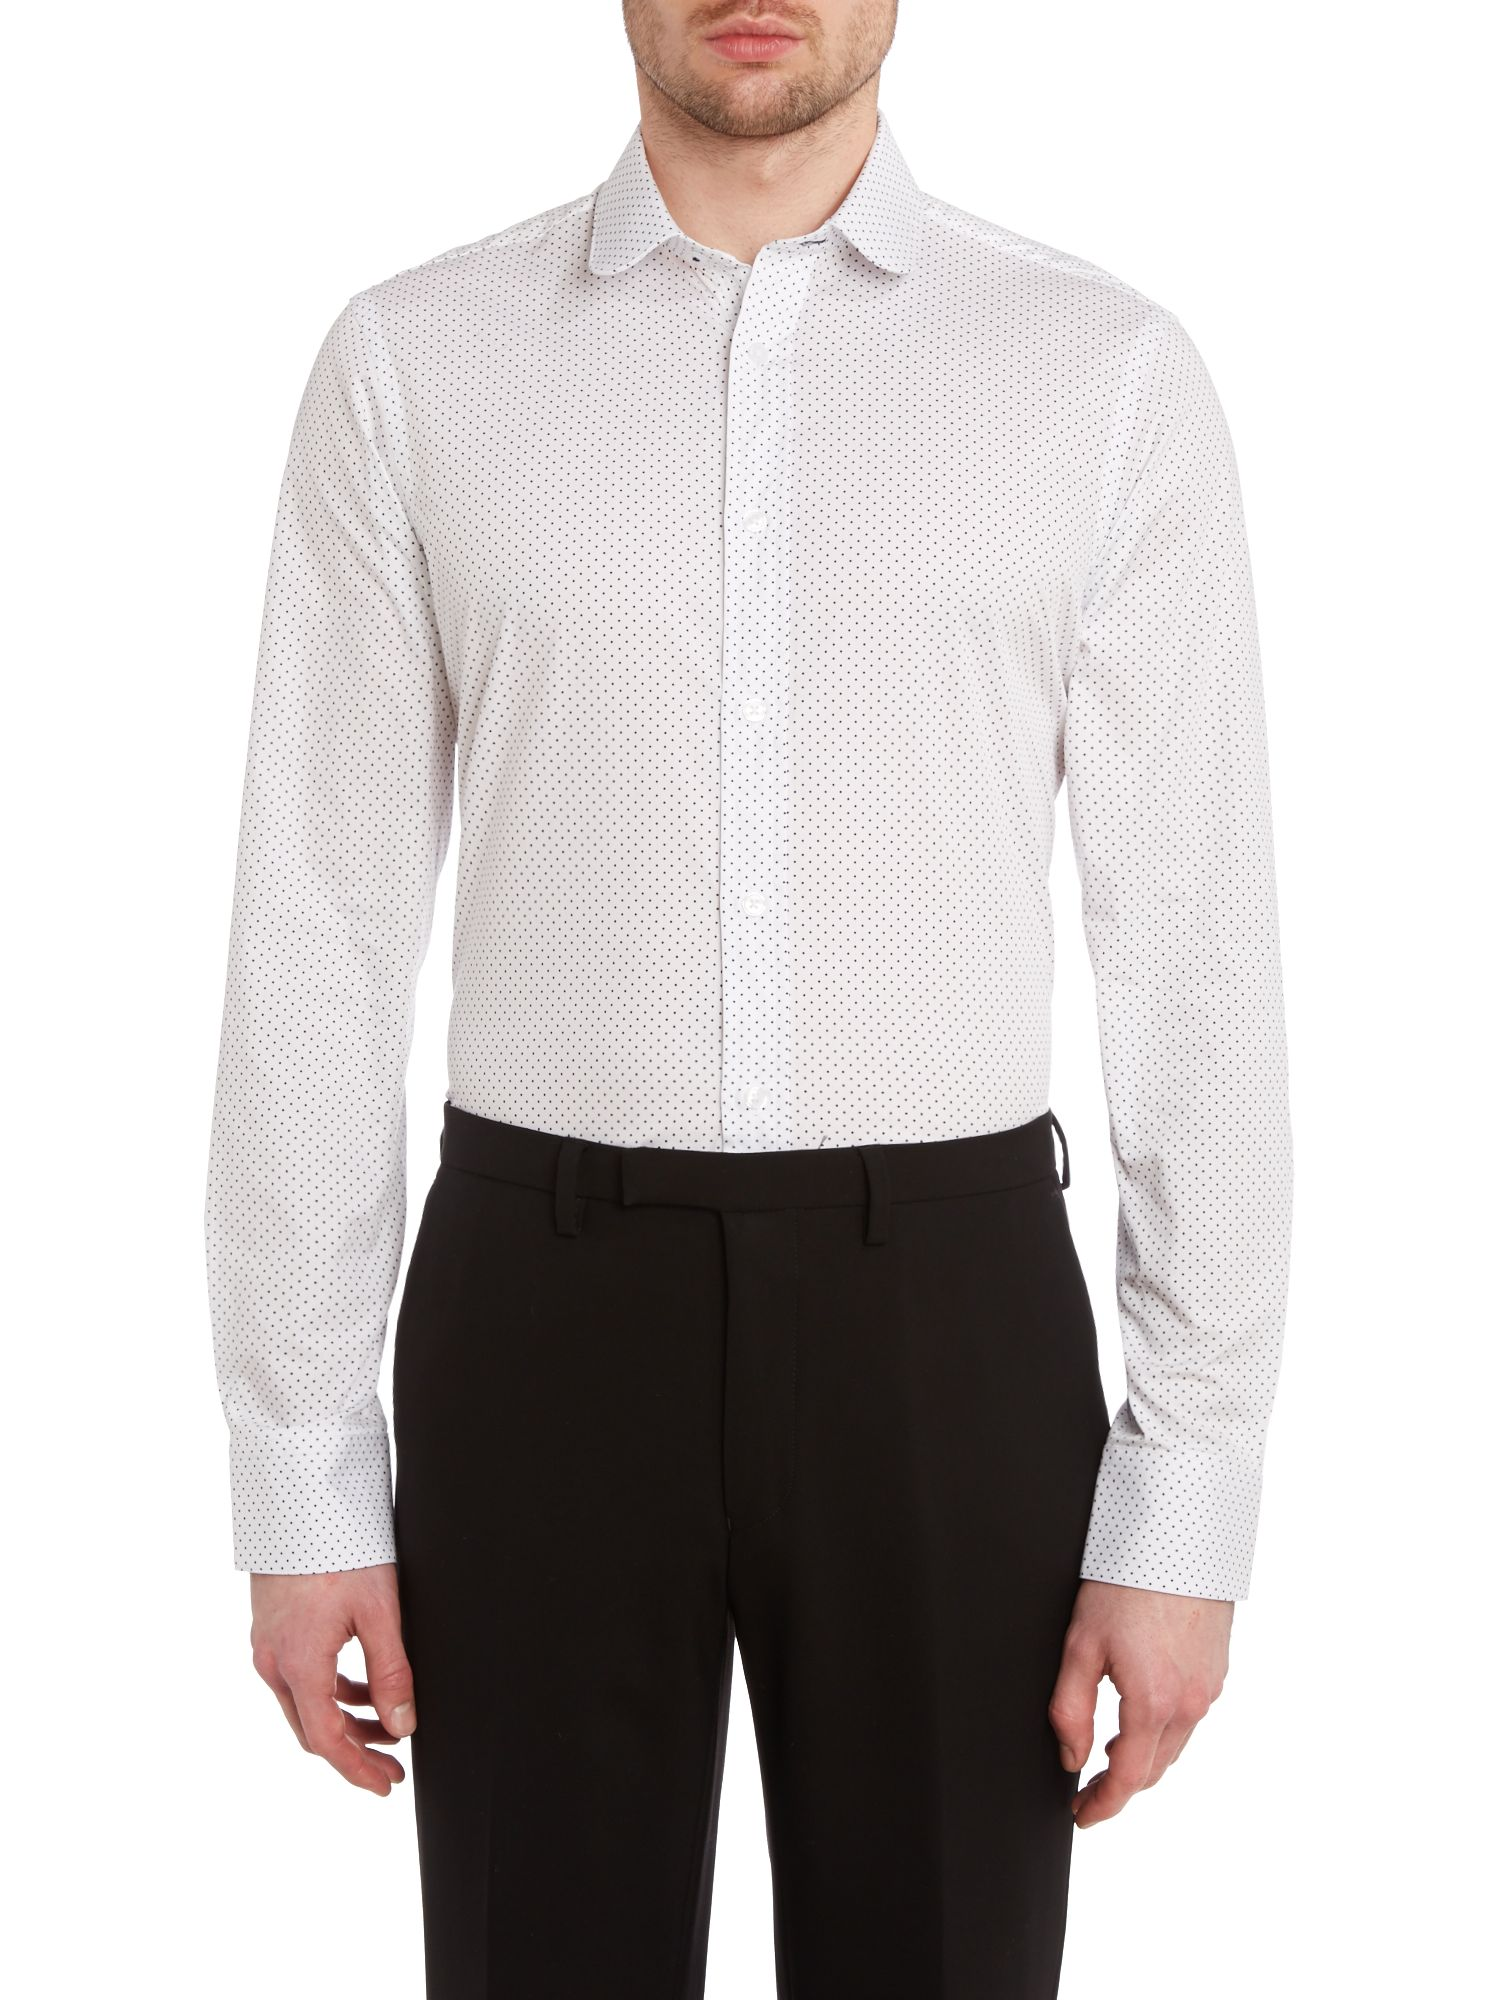 Spot fully fitted long sleeve shirt